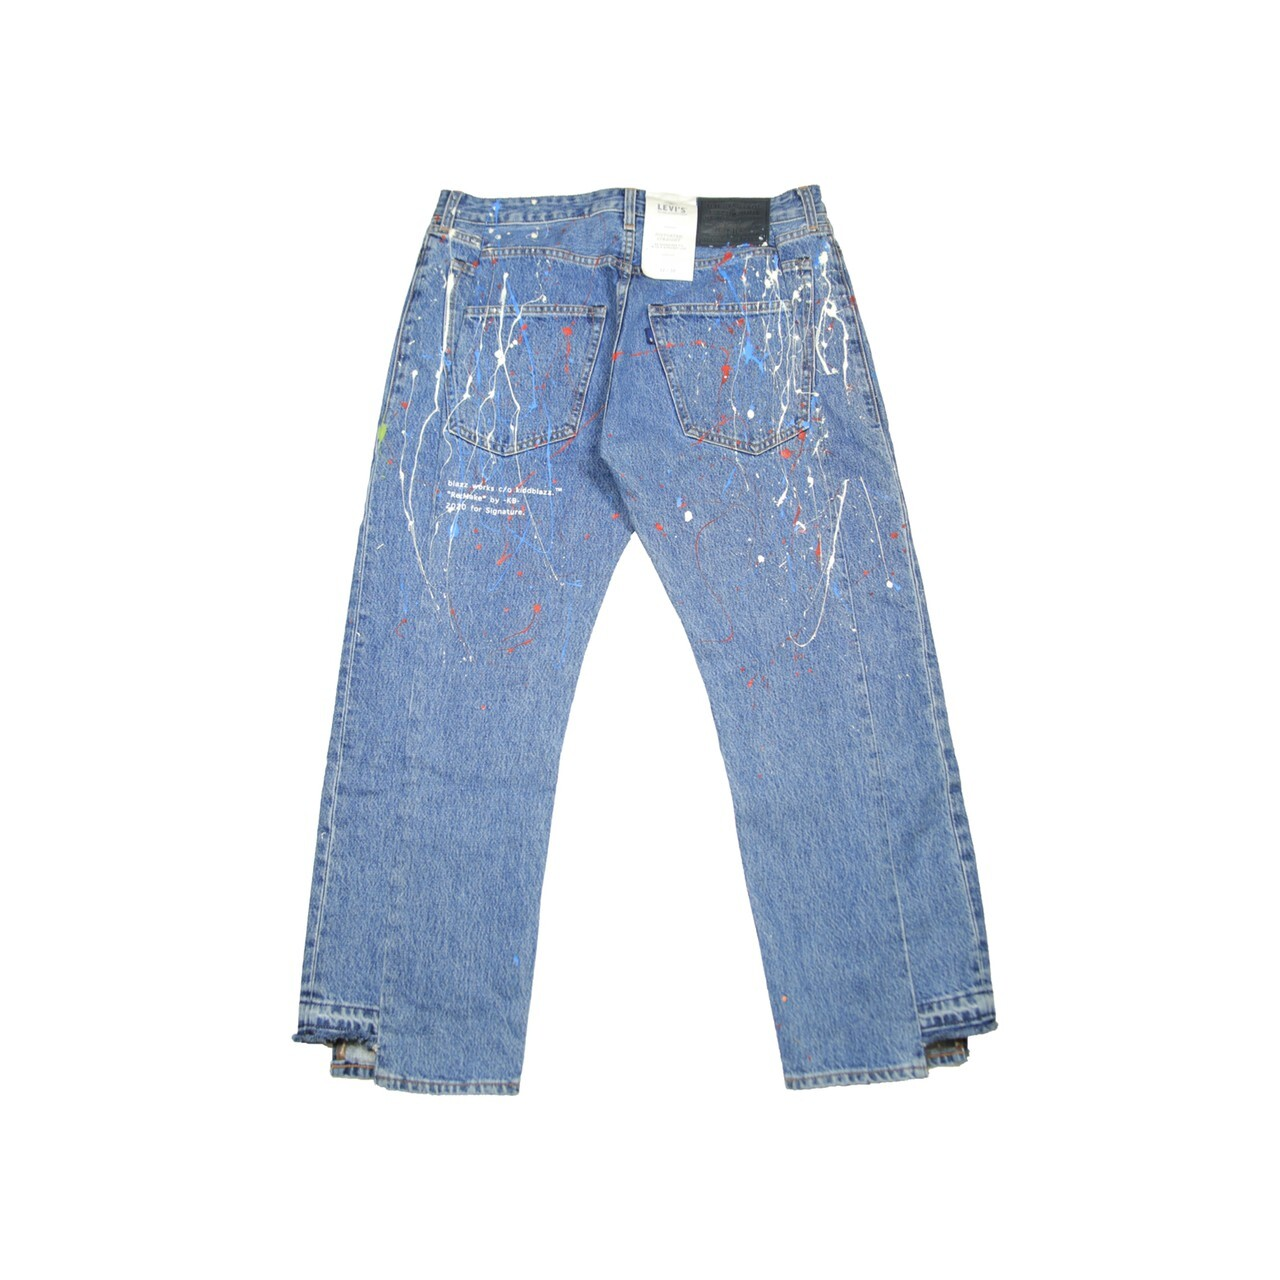 KB PAINT Levi's MADE & CRAFTED WIDE DESIGH DENIM *DEADSTOCK